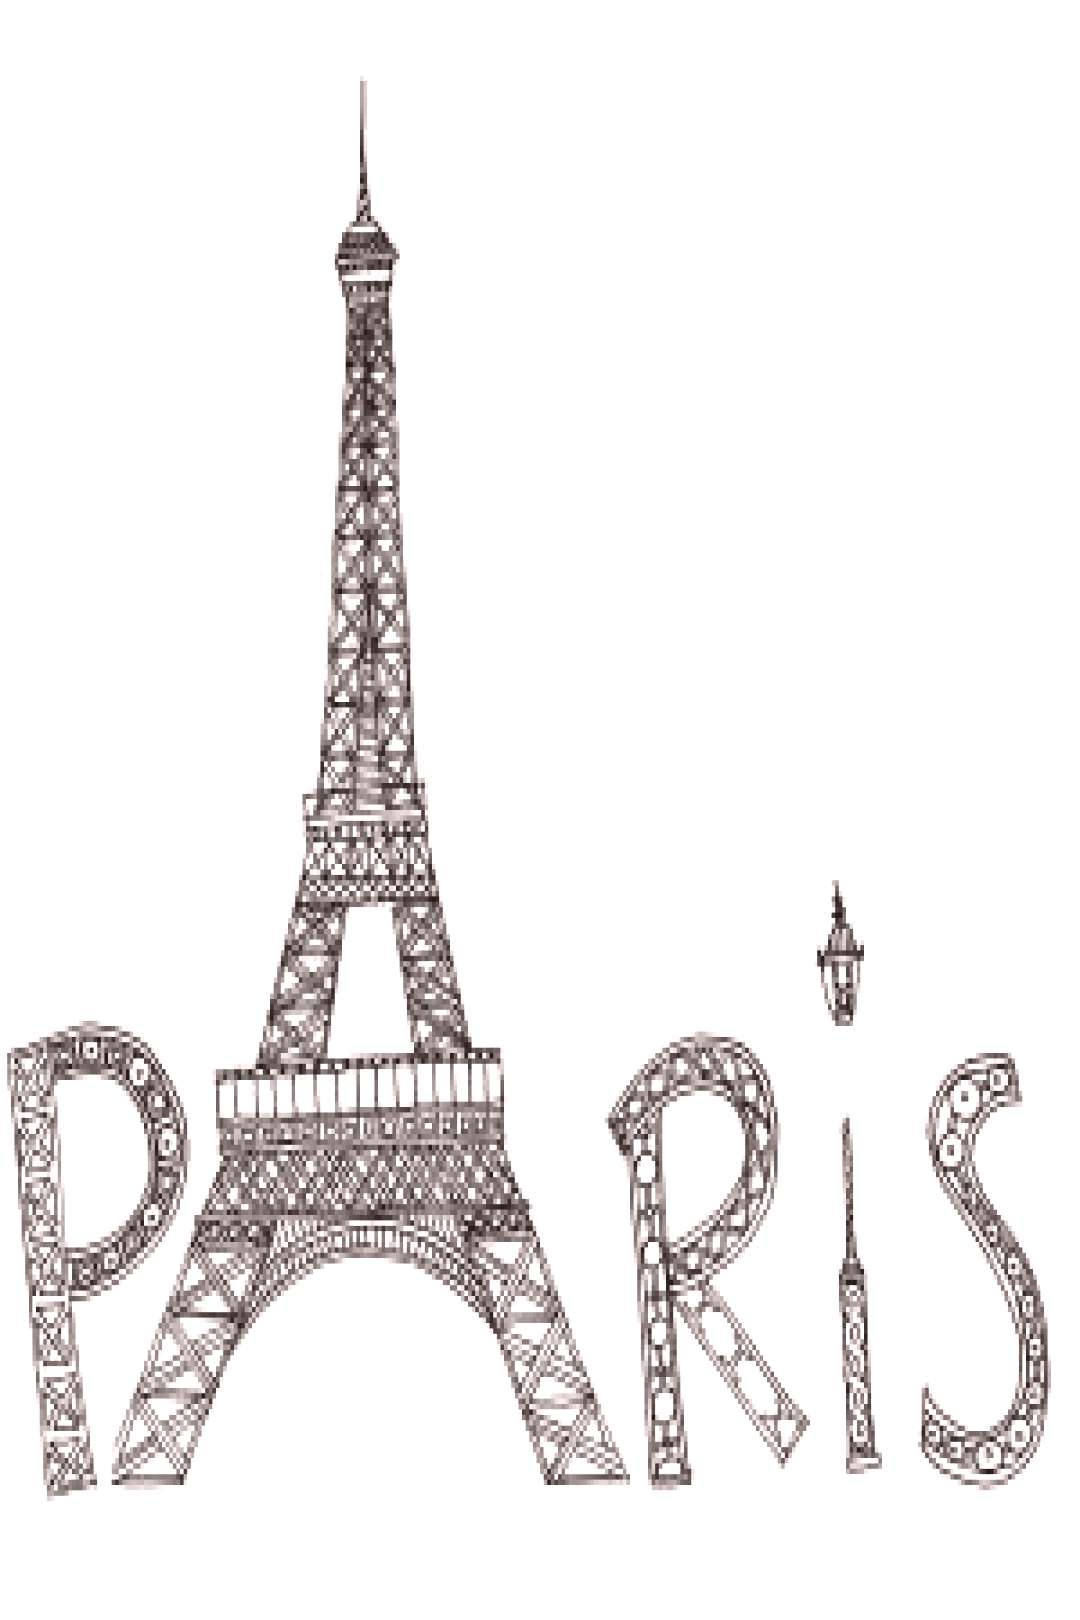 Eiffel Tower _ Art therapy _ Coloring book page _ Free printable doodle to color for grown ups